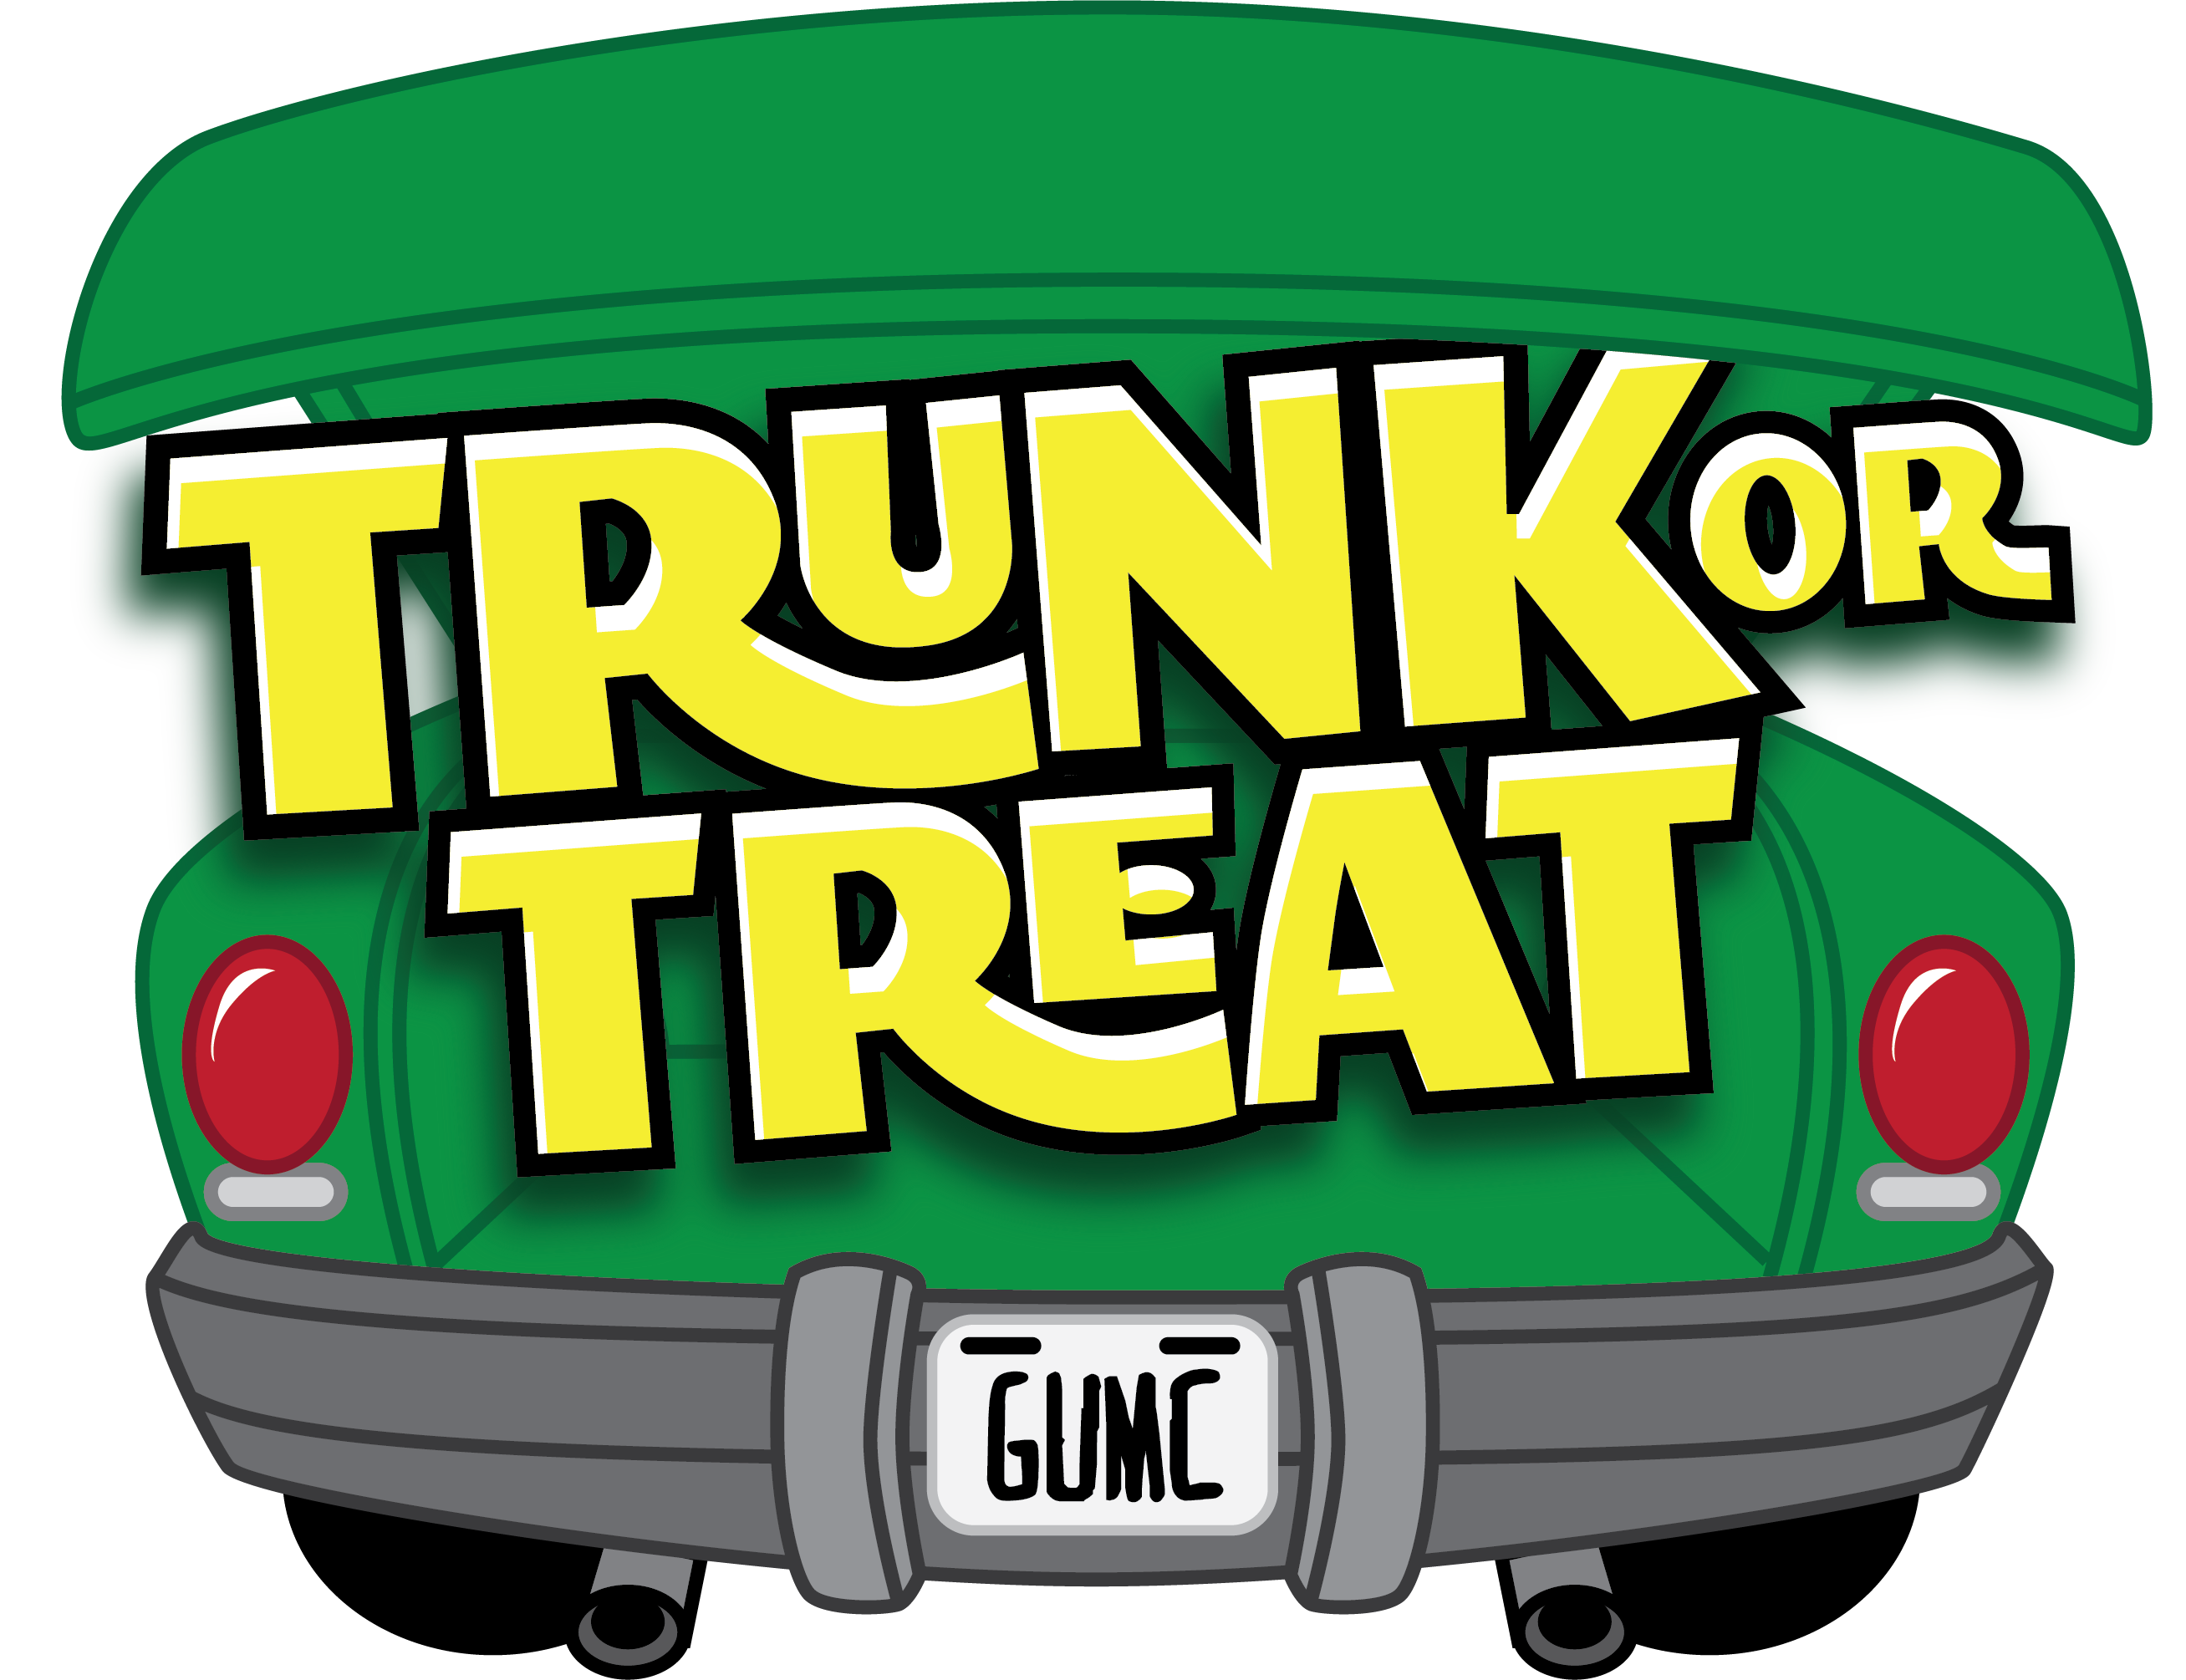 Car parking lot clipart black and white stock Graysonkids Trunk or Treat | Grayson United Methodist Church black and white stock